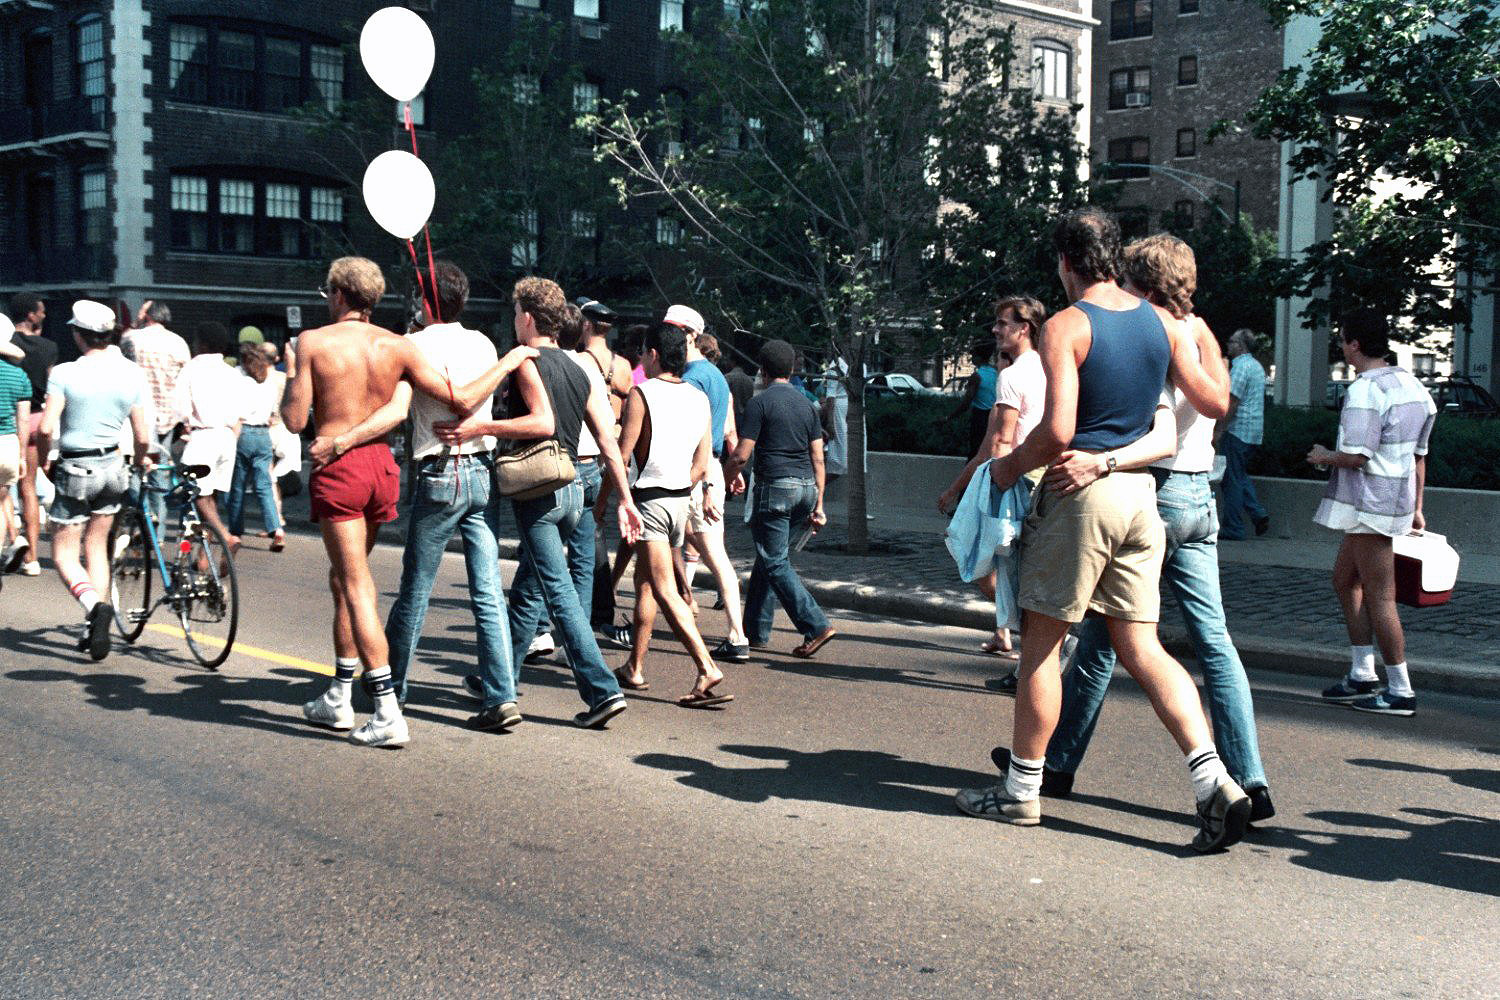 Photos from Chicago's Pride Parade in 1985